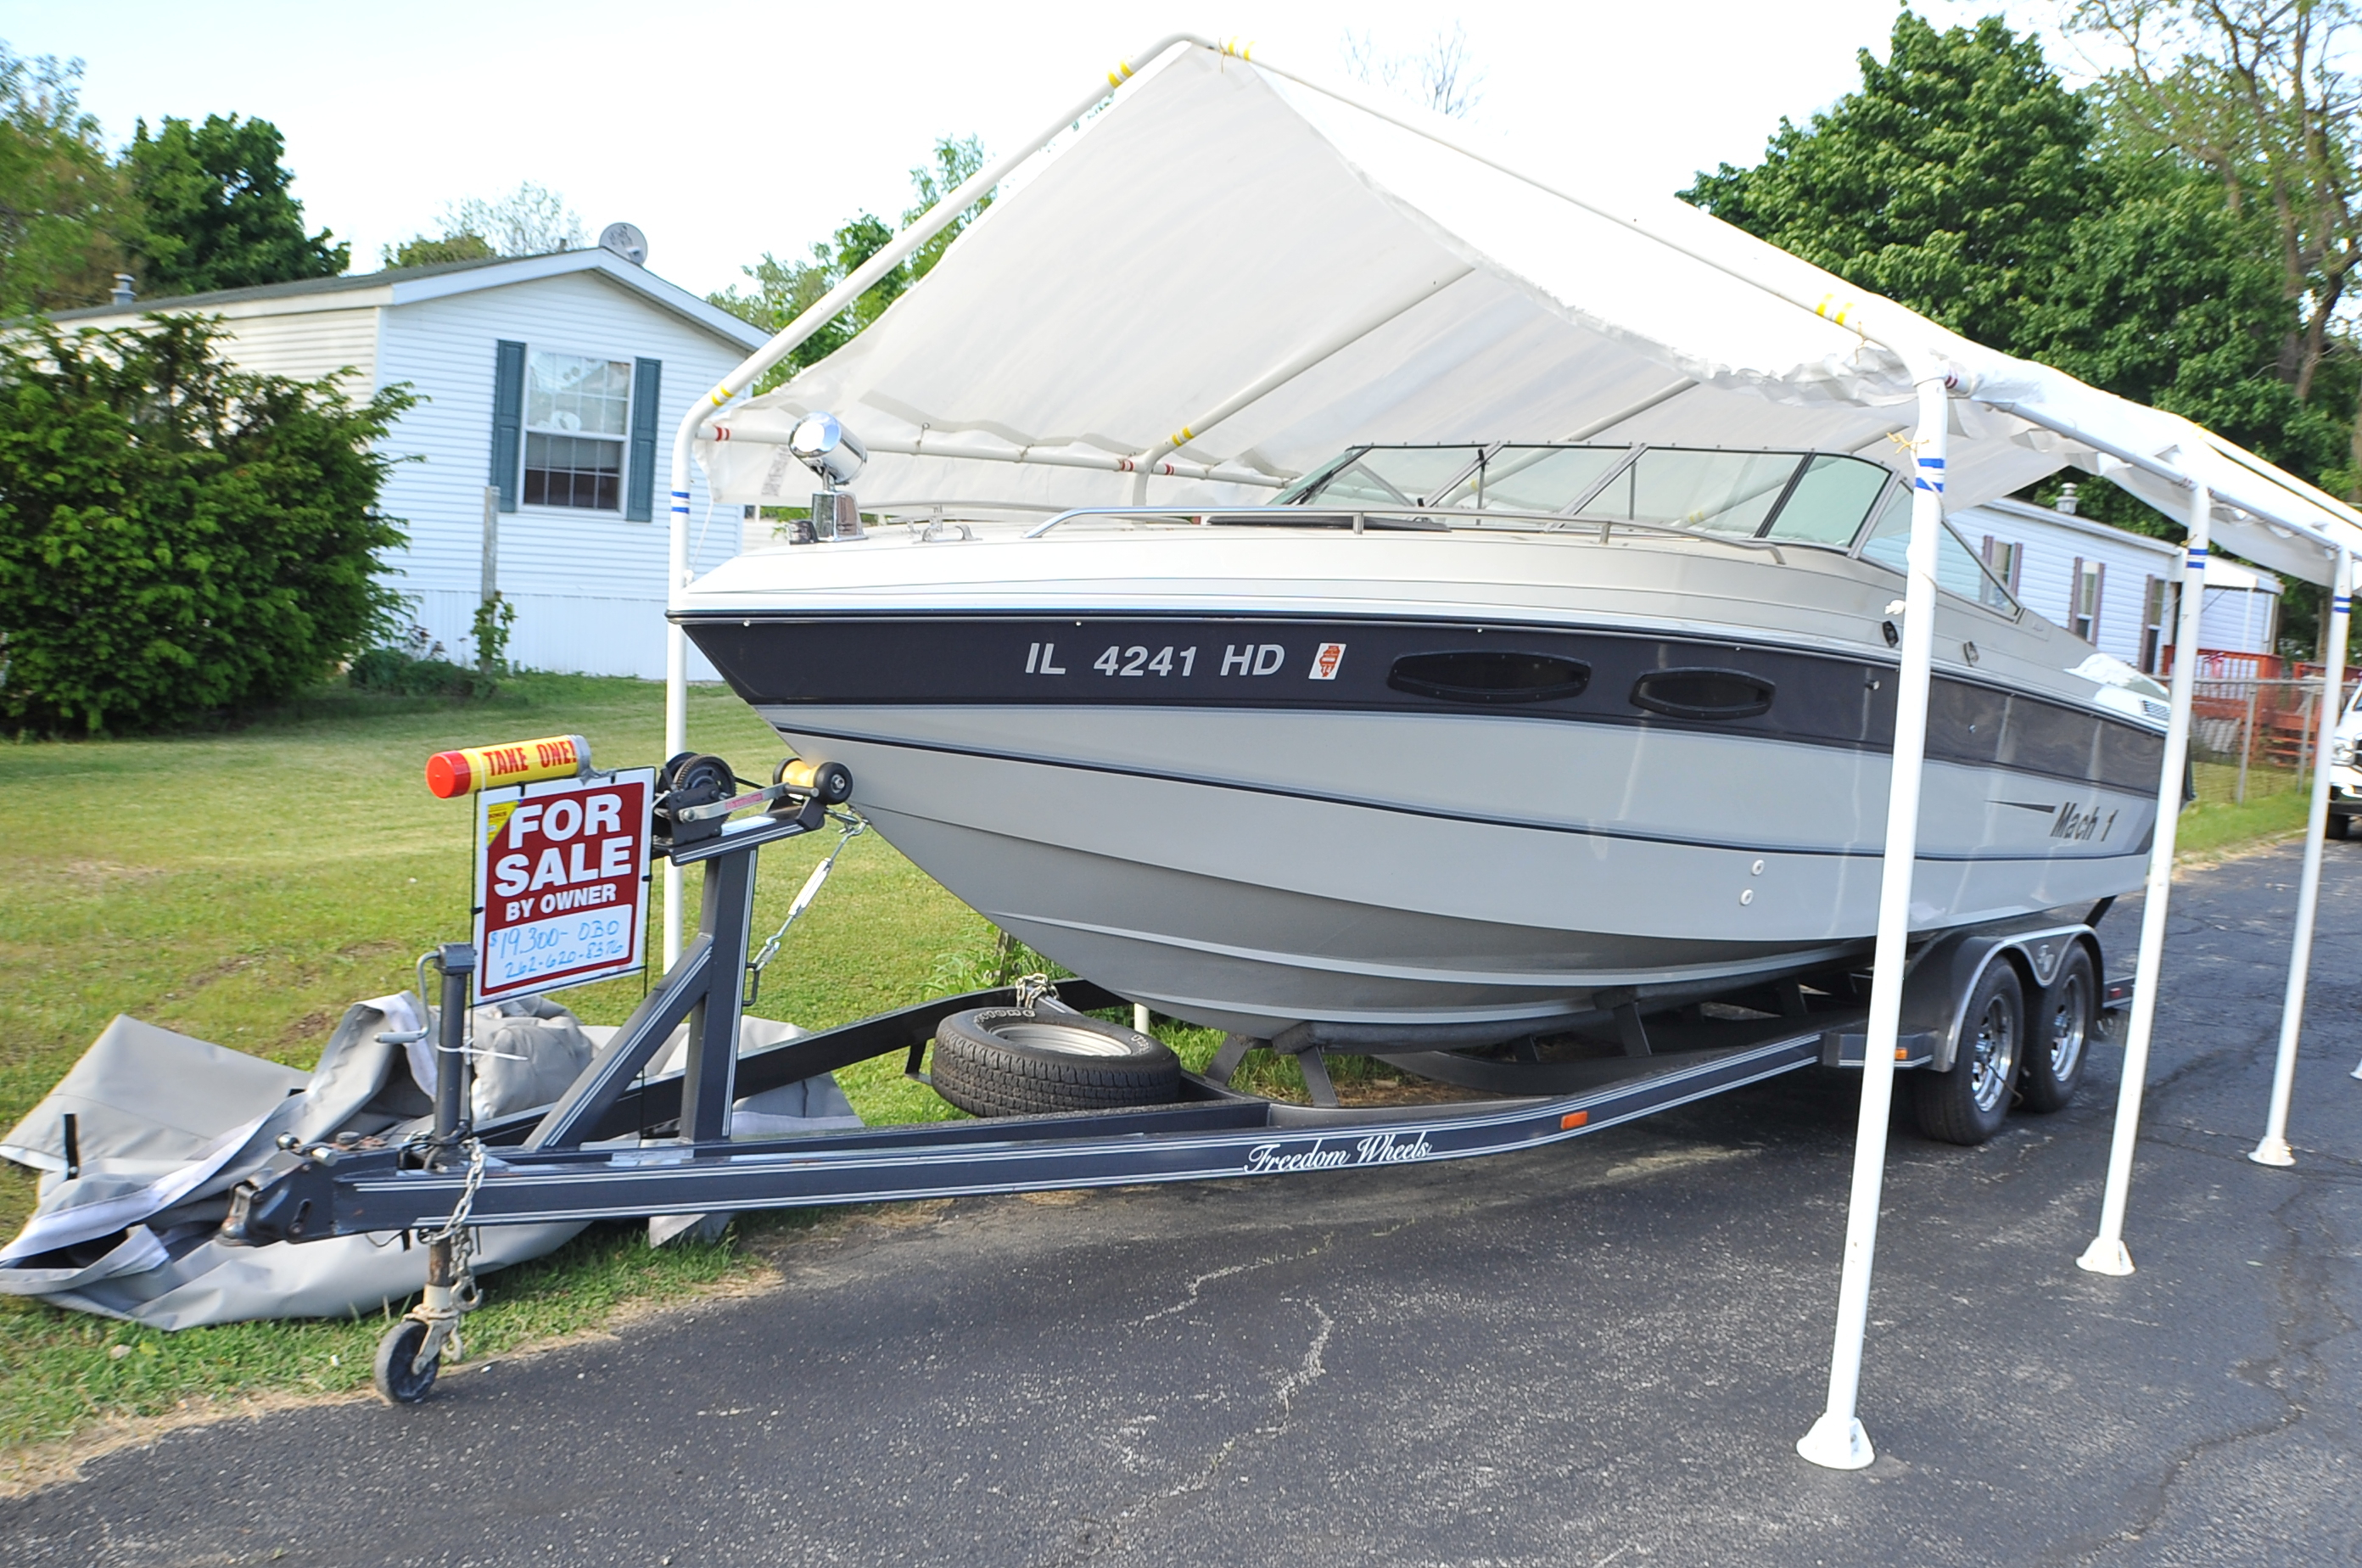 1989 Mach 1 2450 Magnum Cuddy Cabin Speed Boat Sale Barrington Beach Park Buffalo Grove